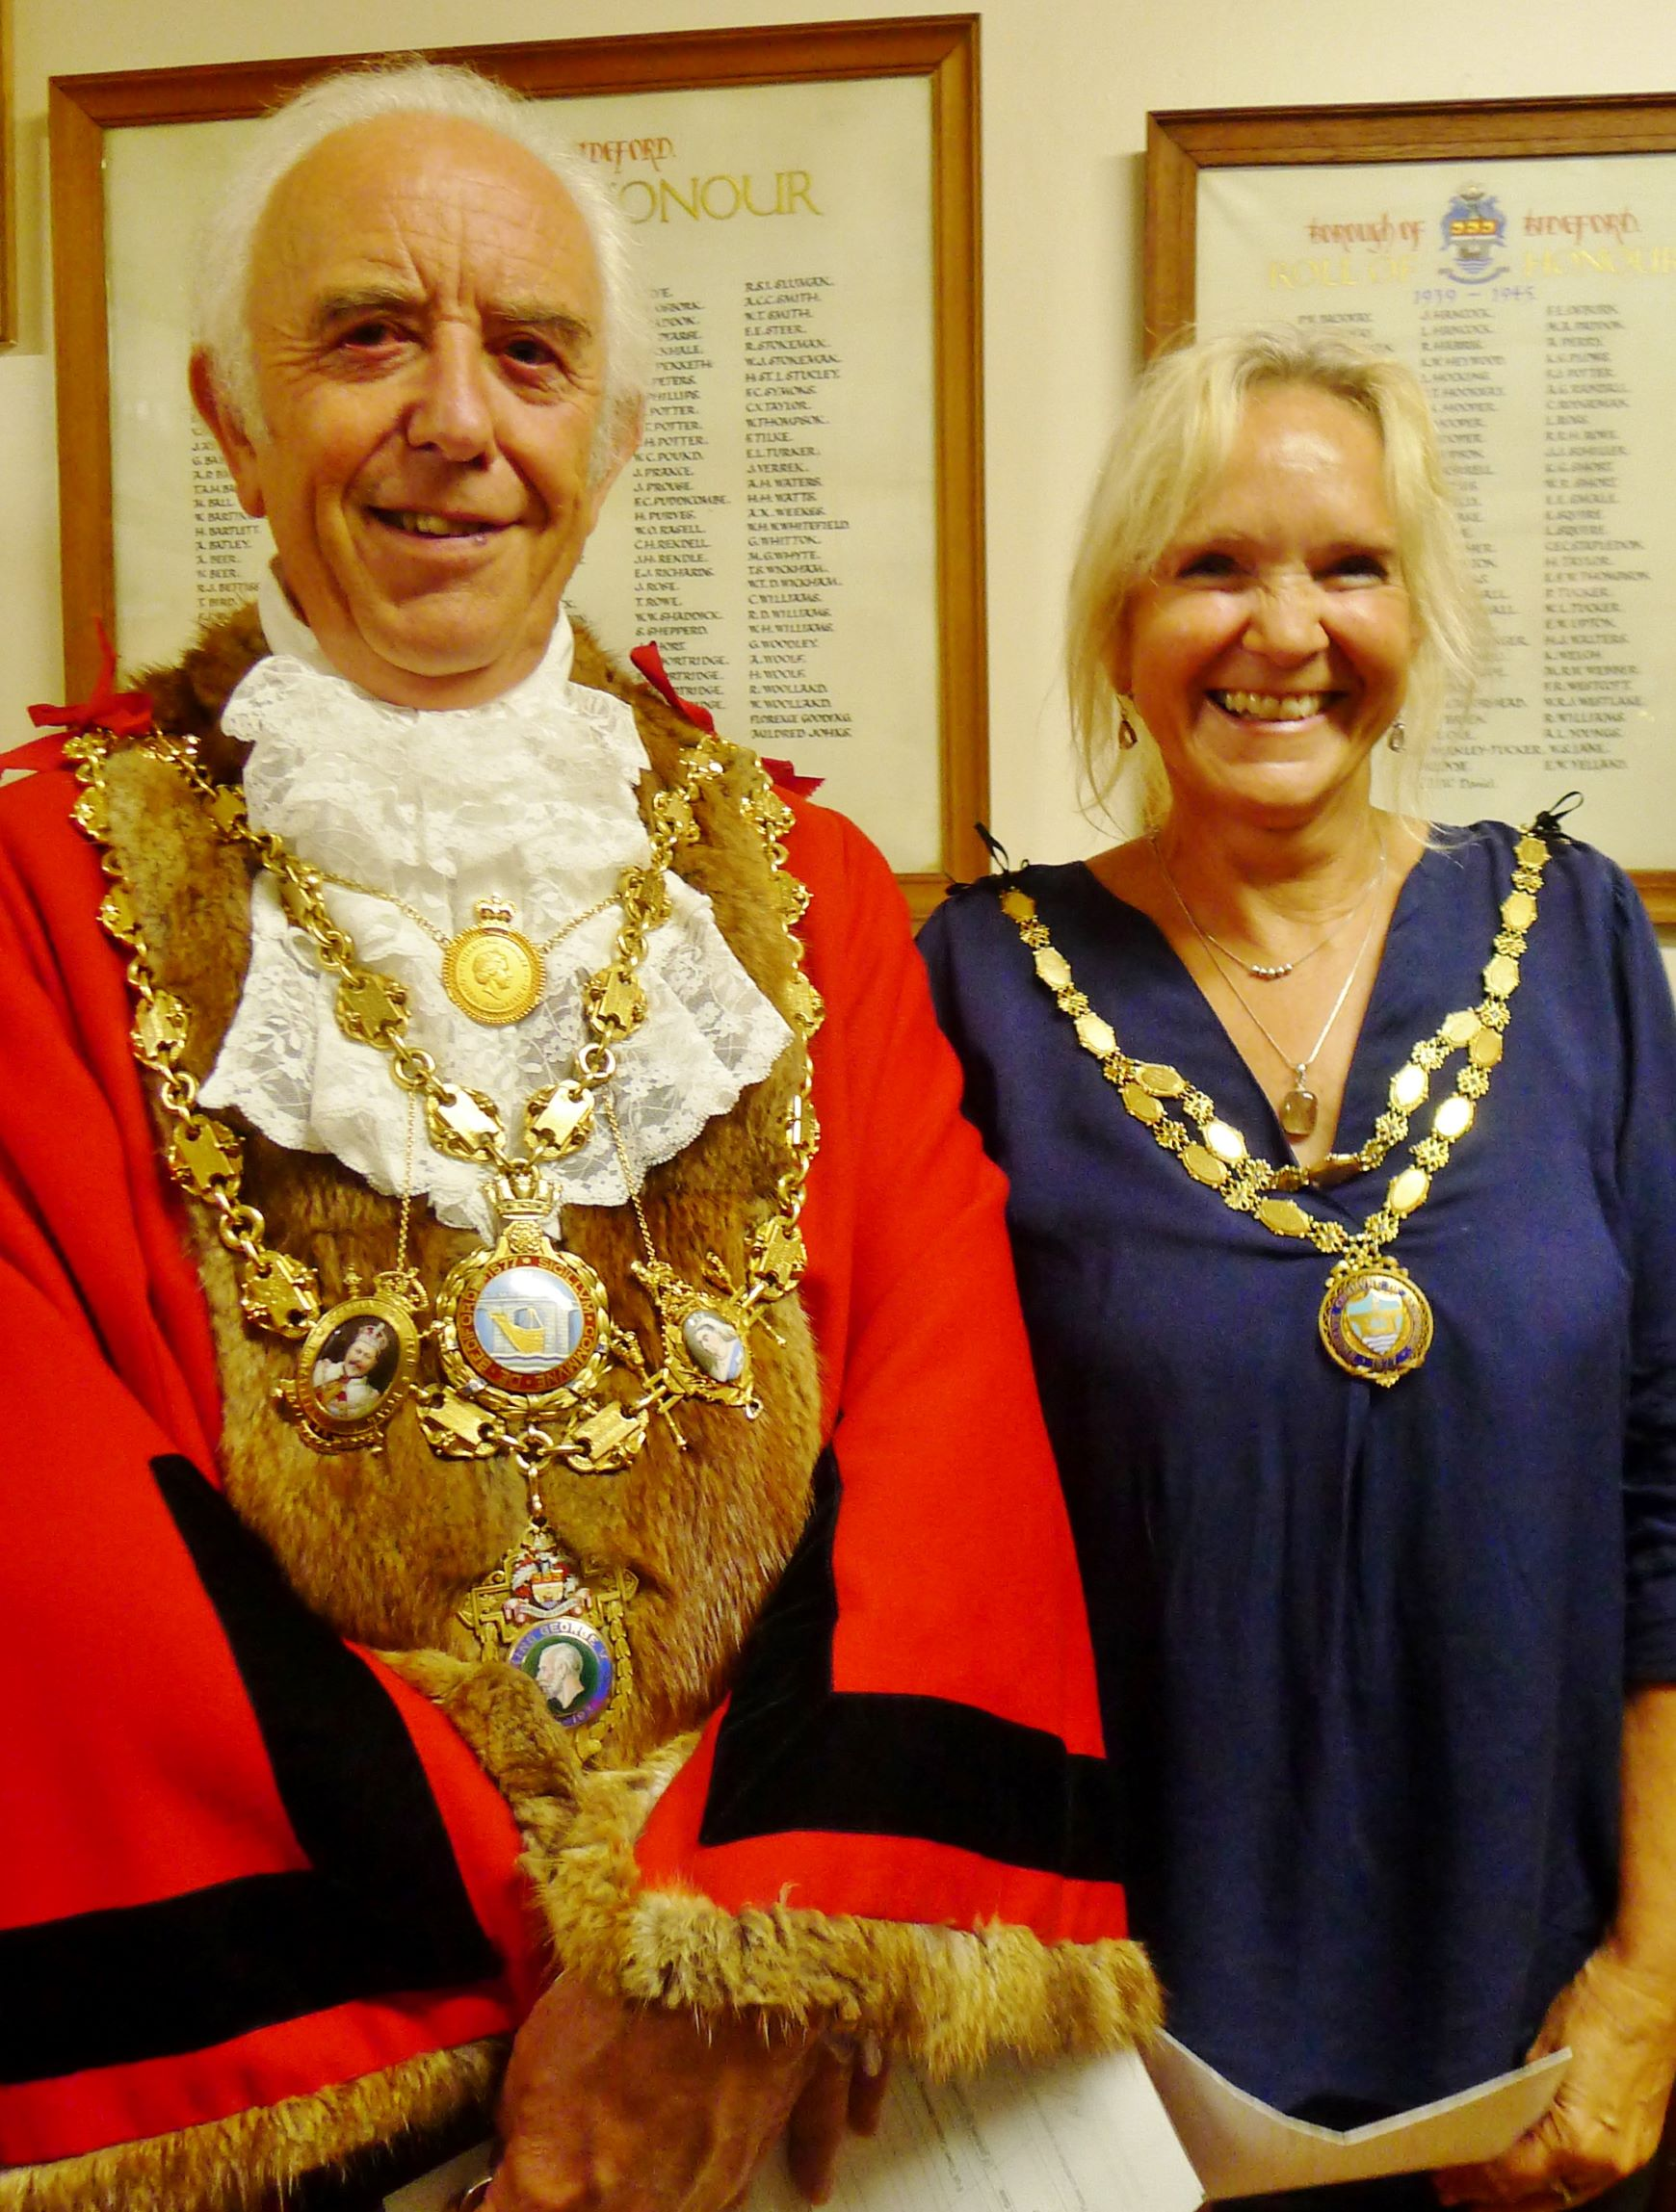 Mayor and Mayoress Mayor and Mayoress of Bideford - Cllr Peter Christie and Ms Annette Goodwin